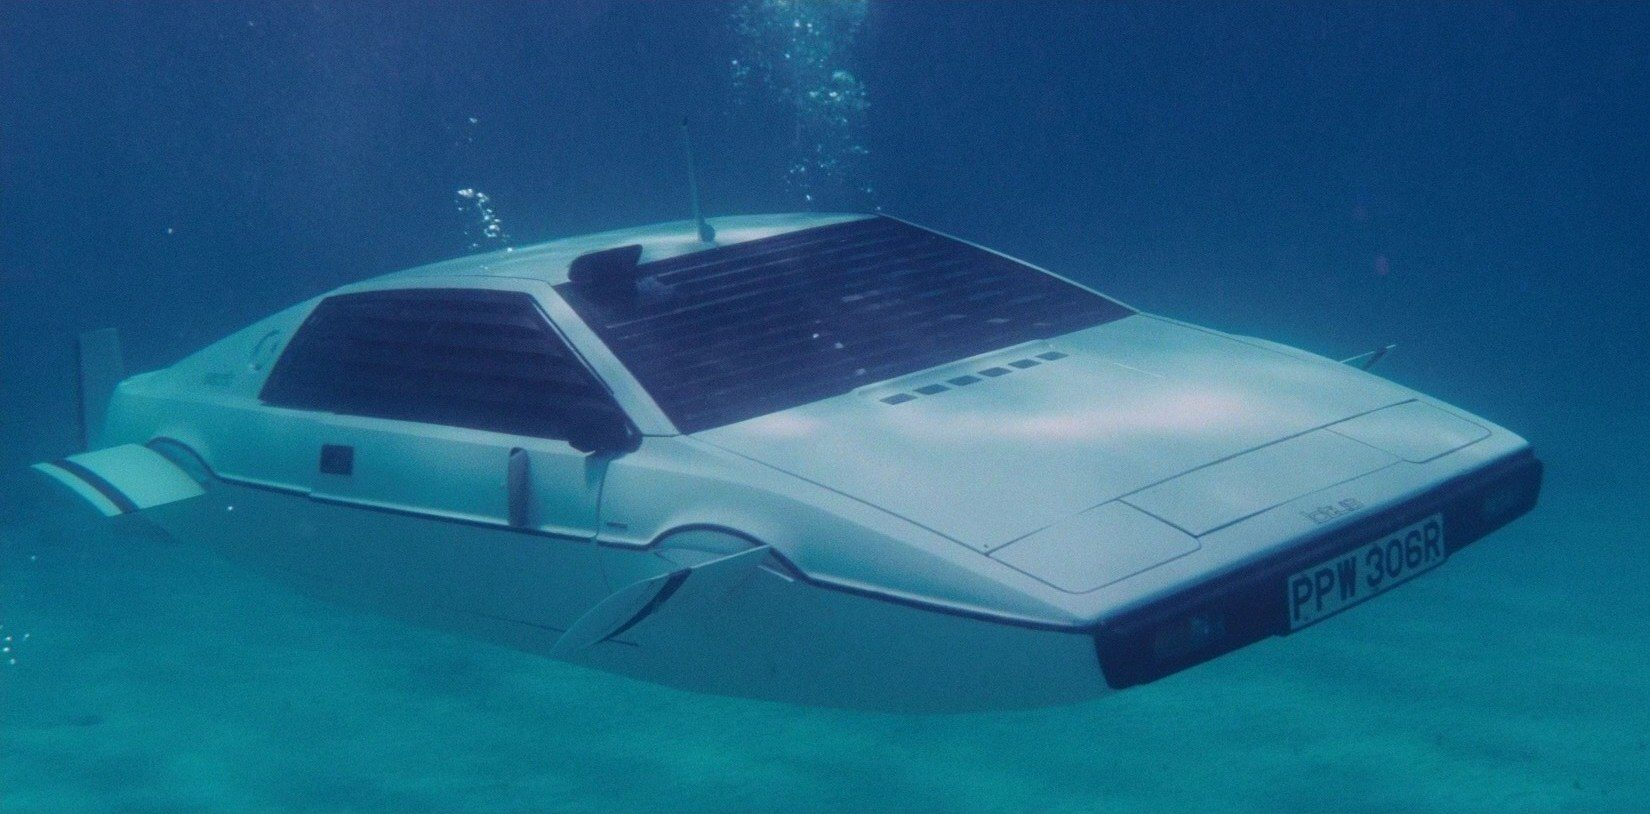 Tesla has a design for an electric submarine car, but don't hold your breath - Electrek